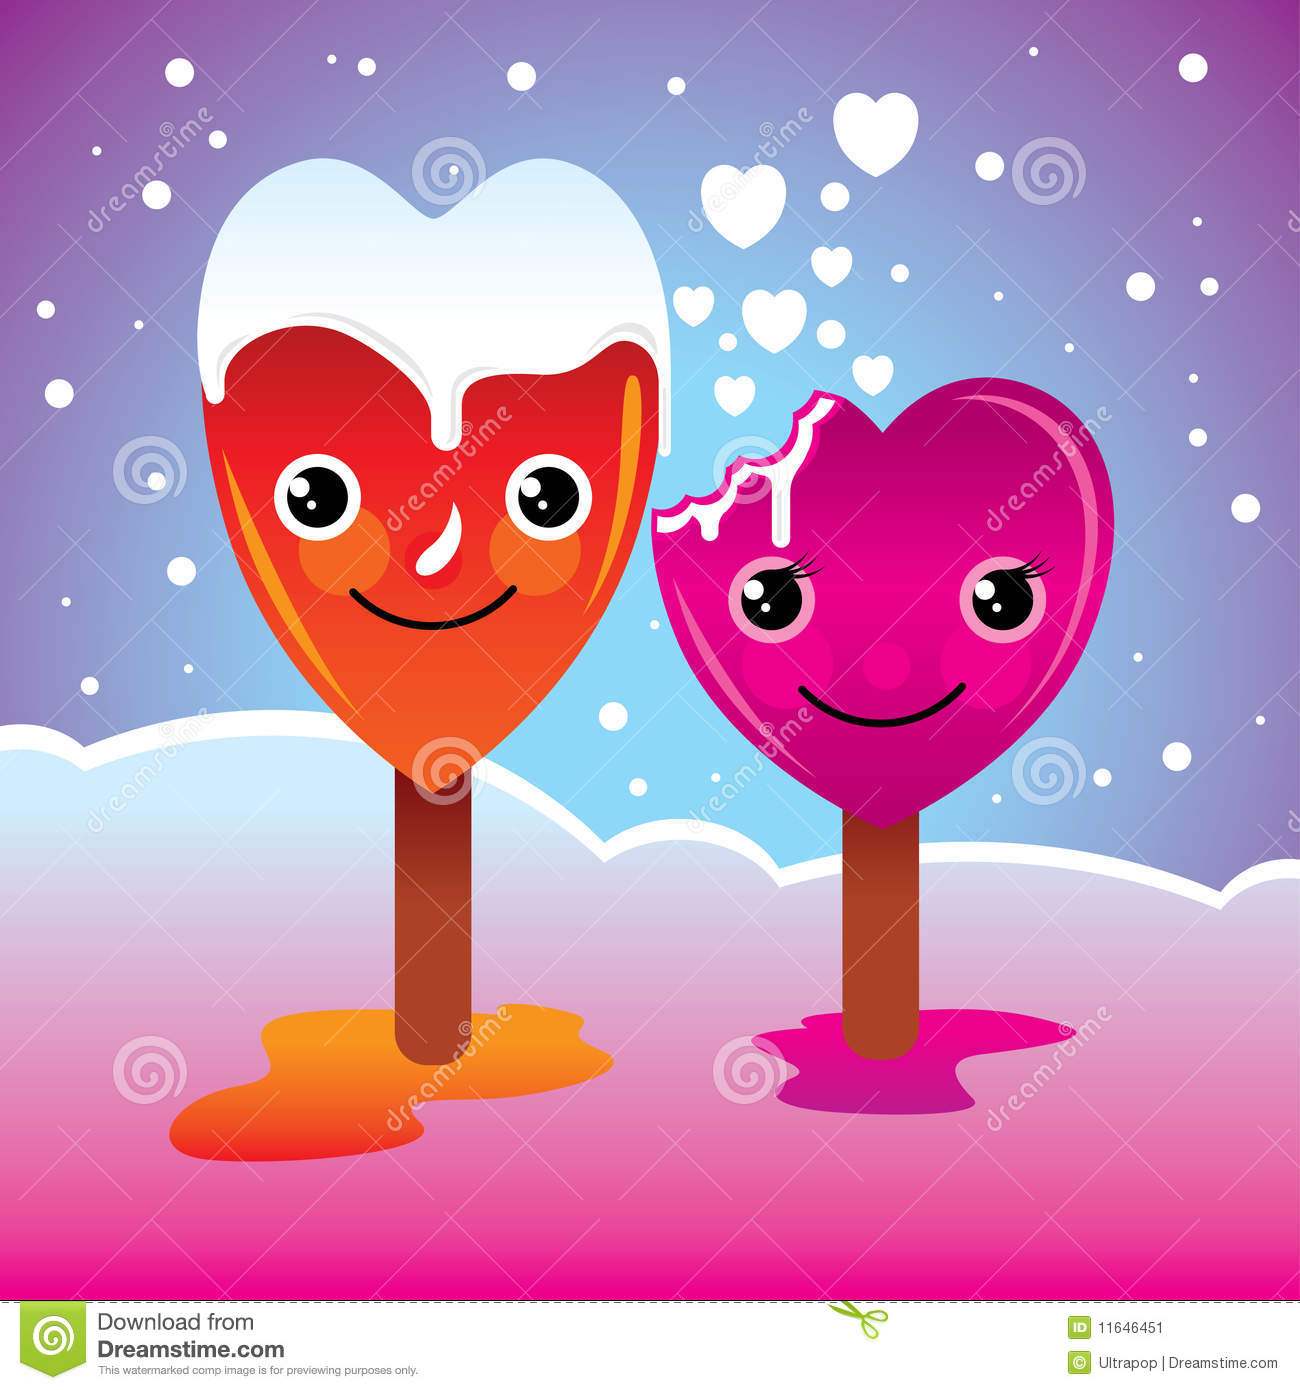 Cute Popsicle Wallpaper Love Cartoon Stock Vector Image Of Married Card Love